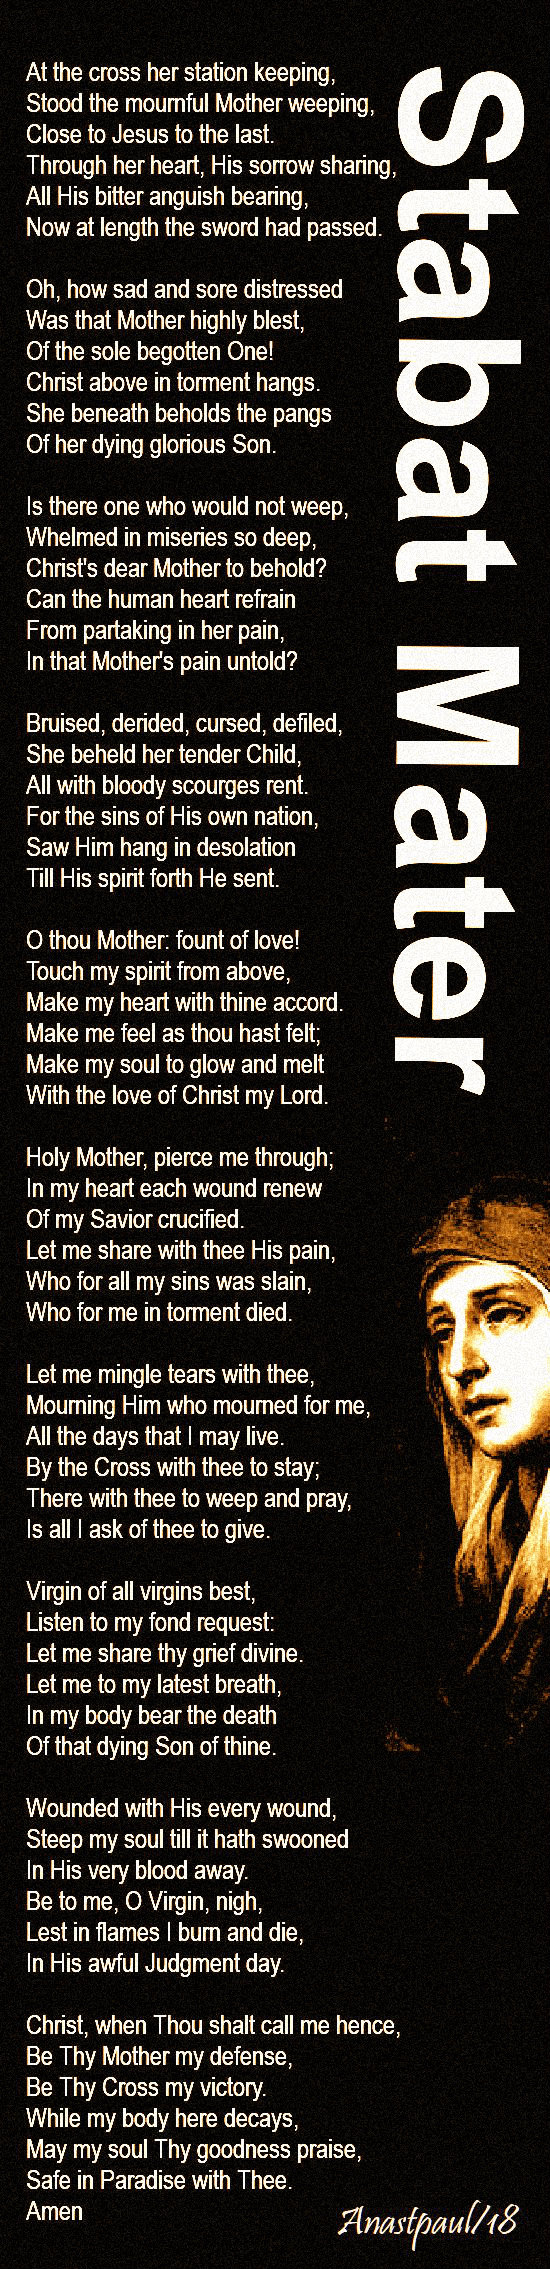 stabat-mater-as-a-prayer-15-sept-20181 (1).jpg